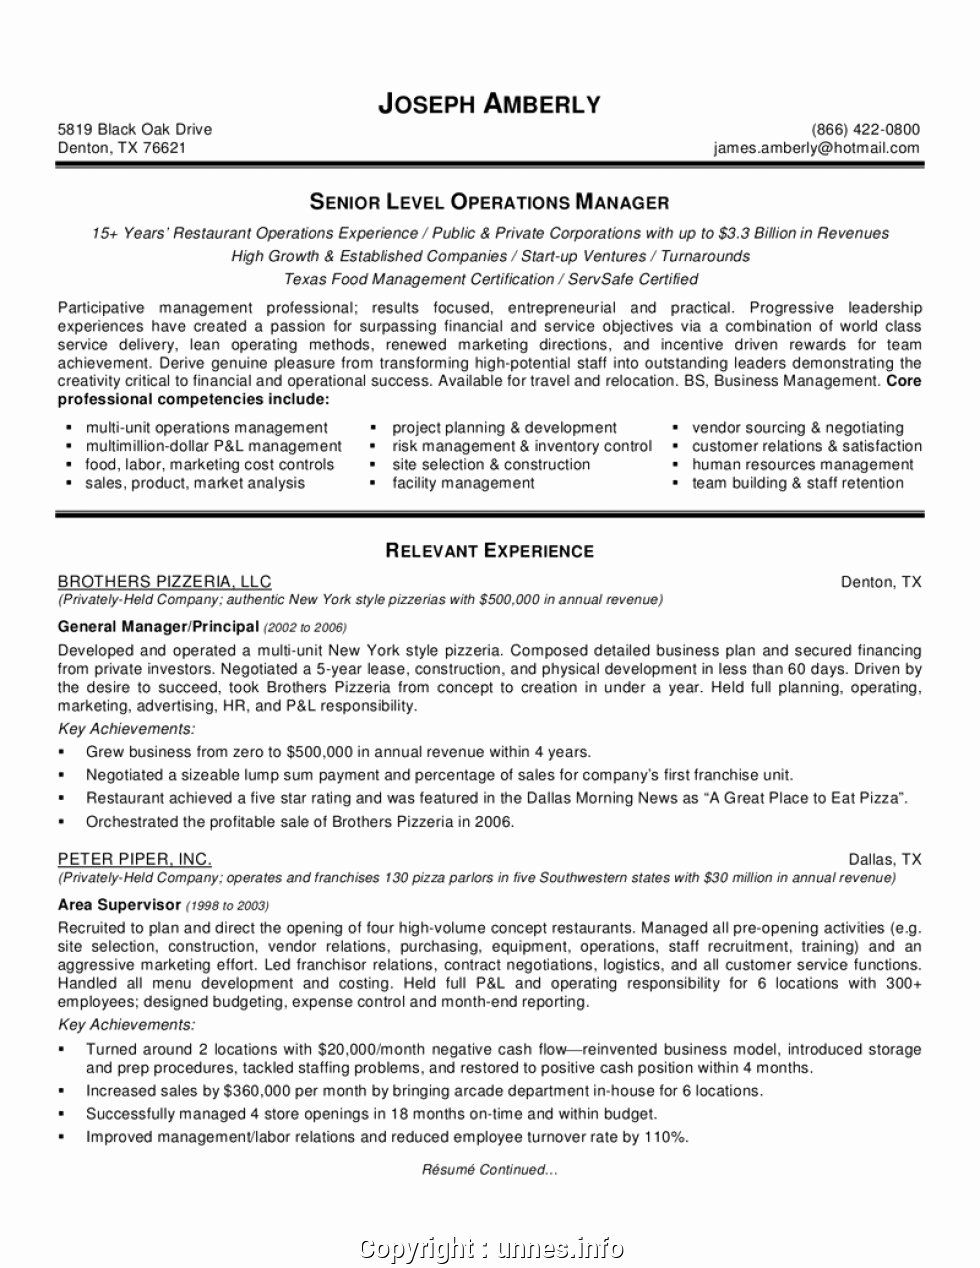 Director Of Operations Resume Examples New top Resume